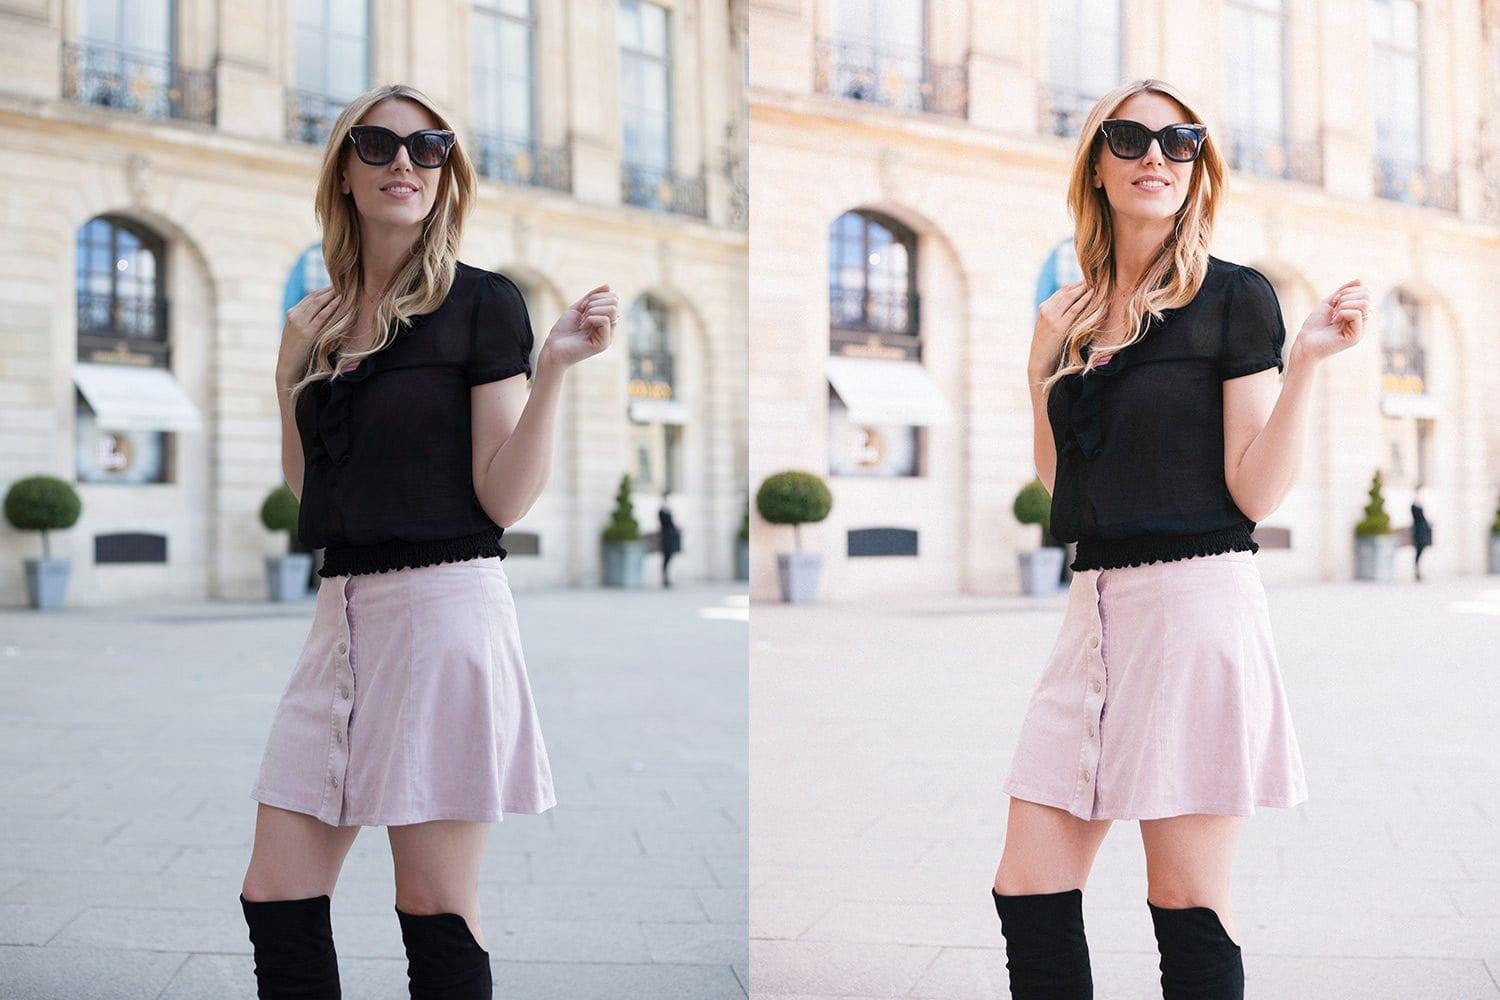 Beautiful-Lightroom-Presets-and-Profiles-Paris-Girl-Before-and-After-Presetpro.com